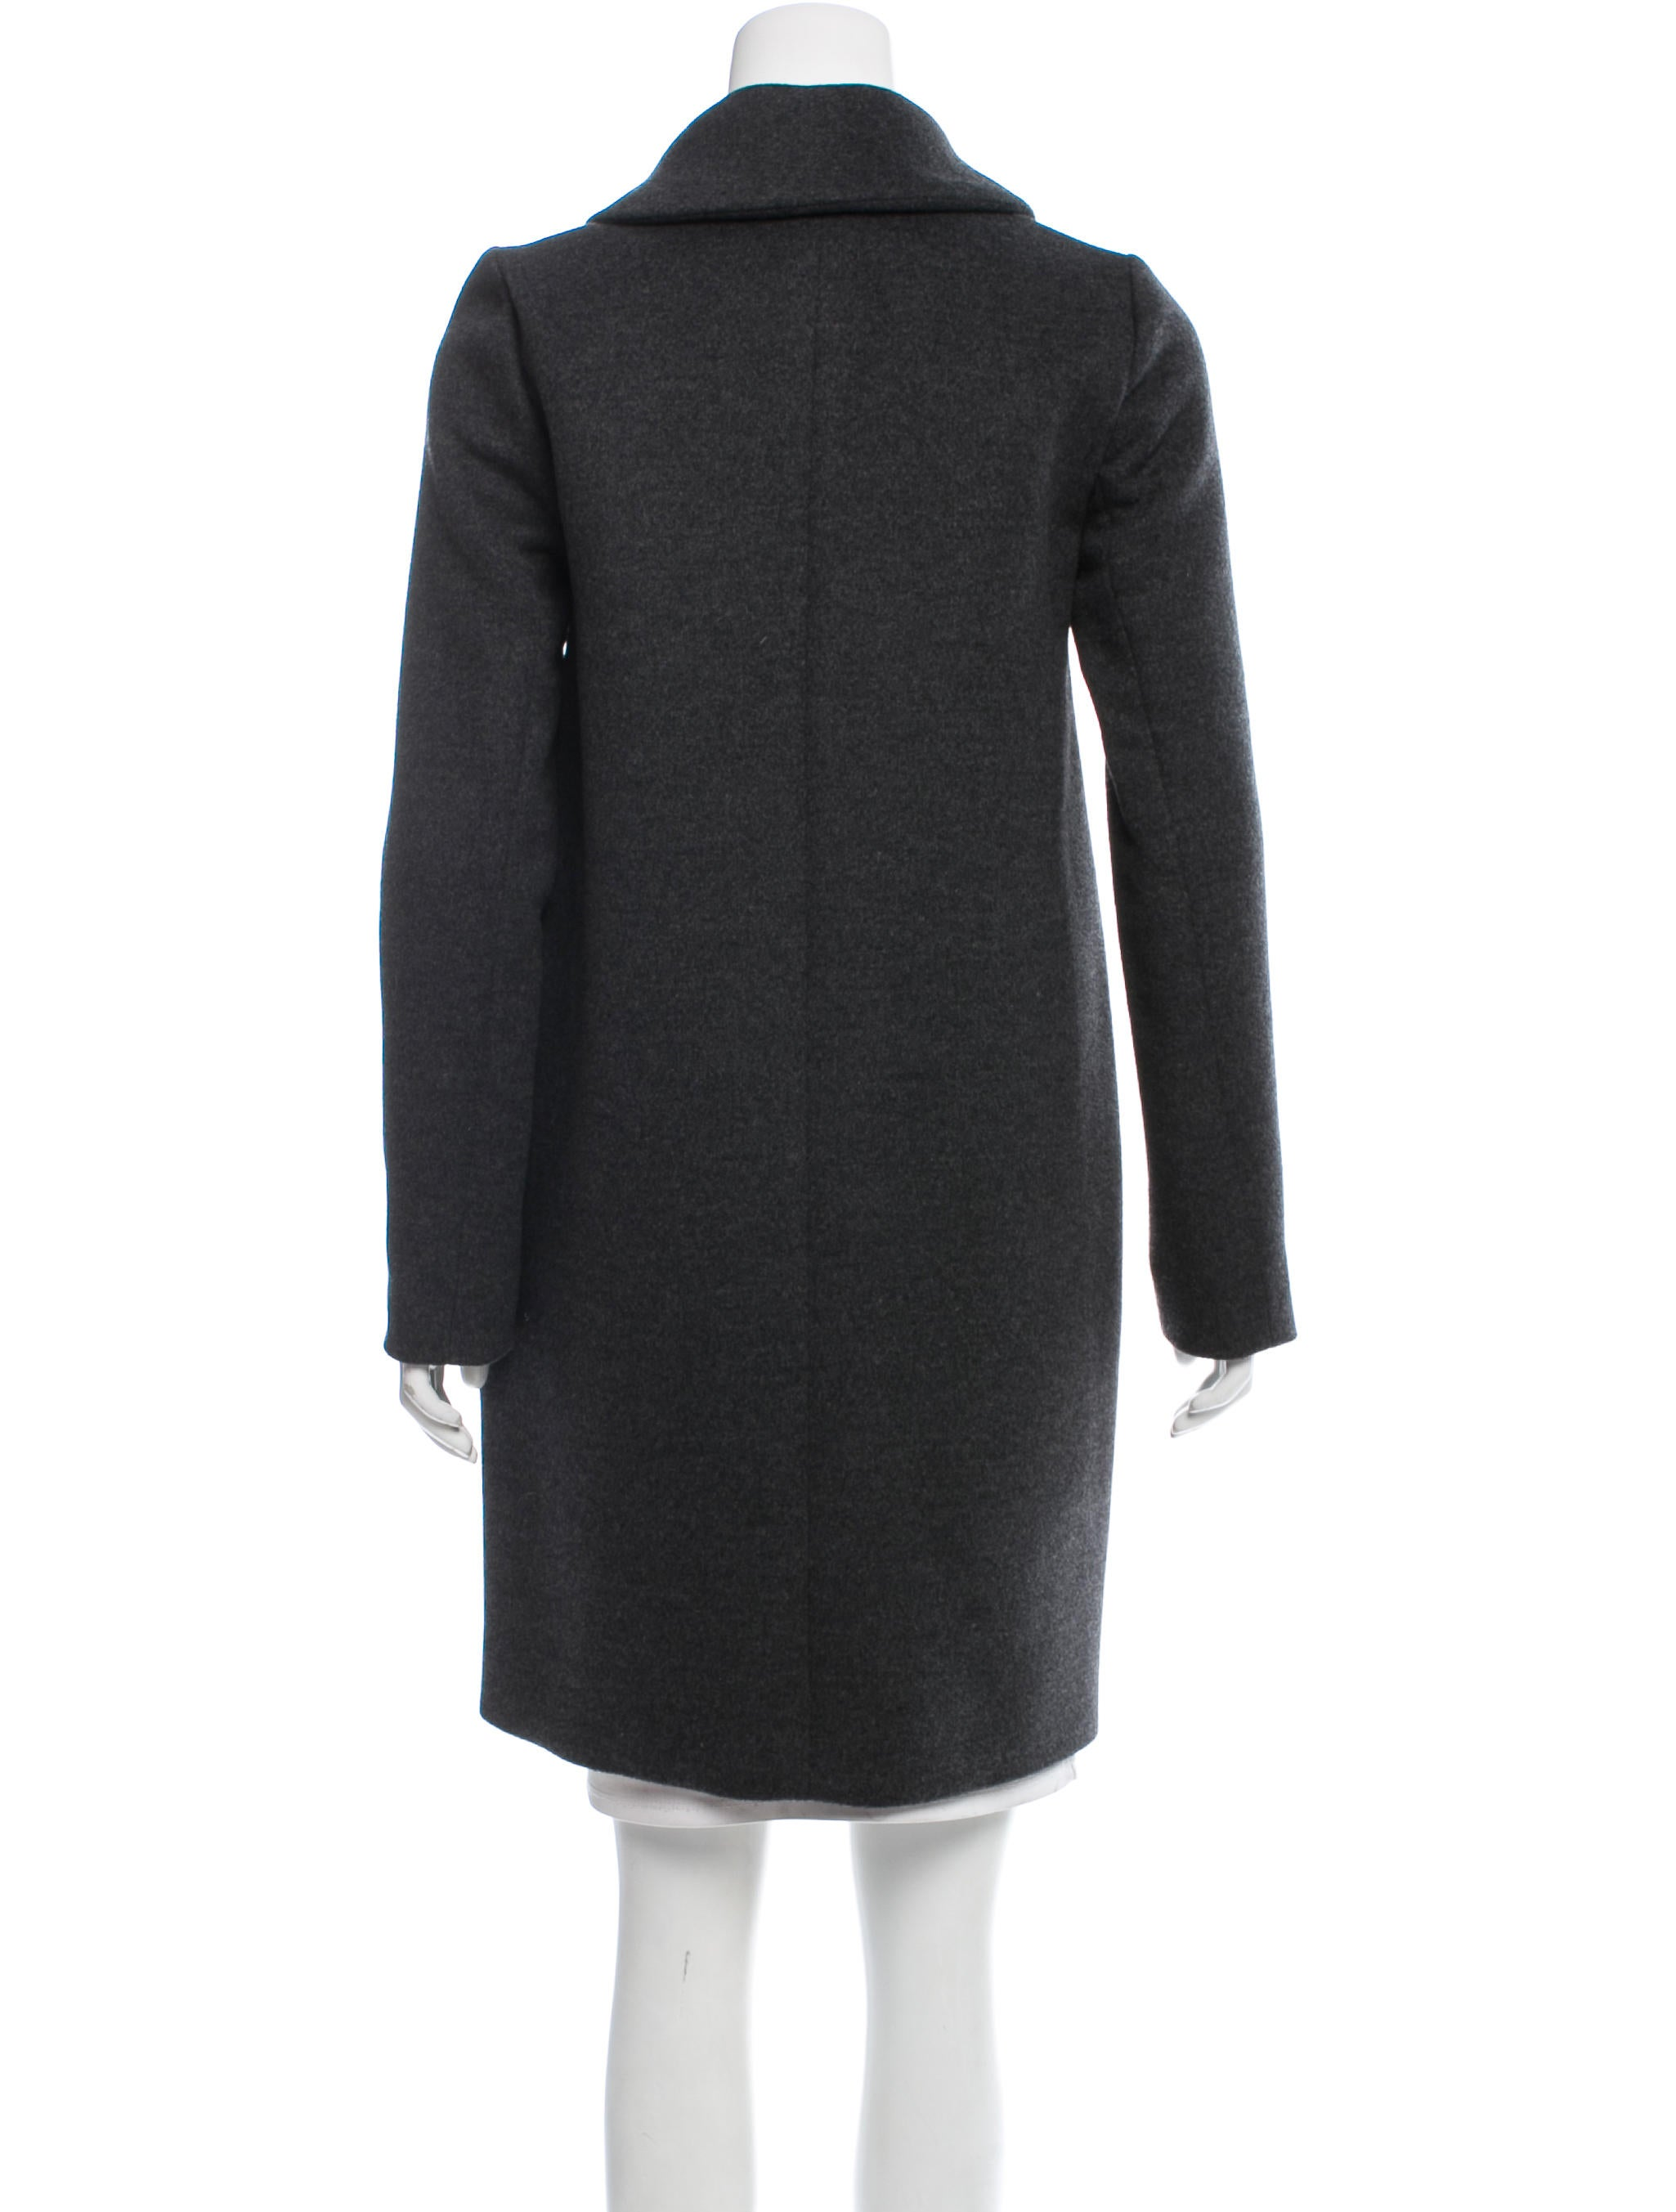 This beautiful boiled wool blazer offers a polished and pulled together way to stay cozy and warm this season. The tailored silhouette is figure flattering, but also eases over all of your favorite tops from tunics and tees to blouses and sweaters.